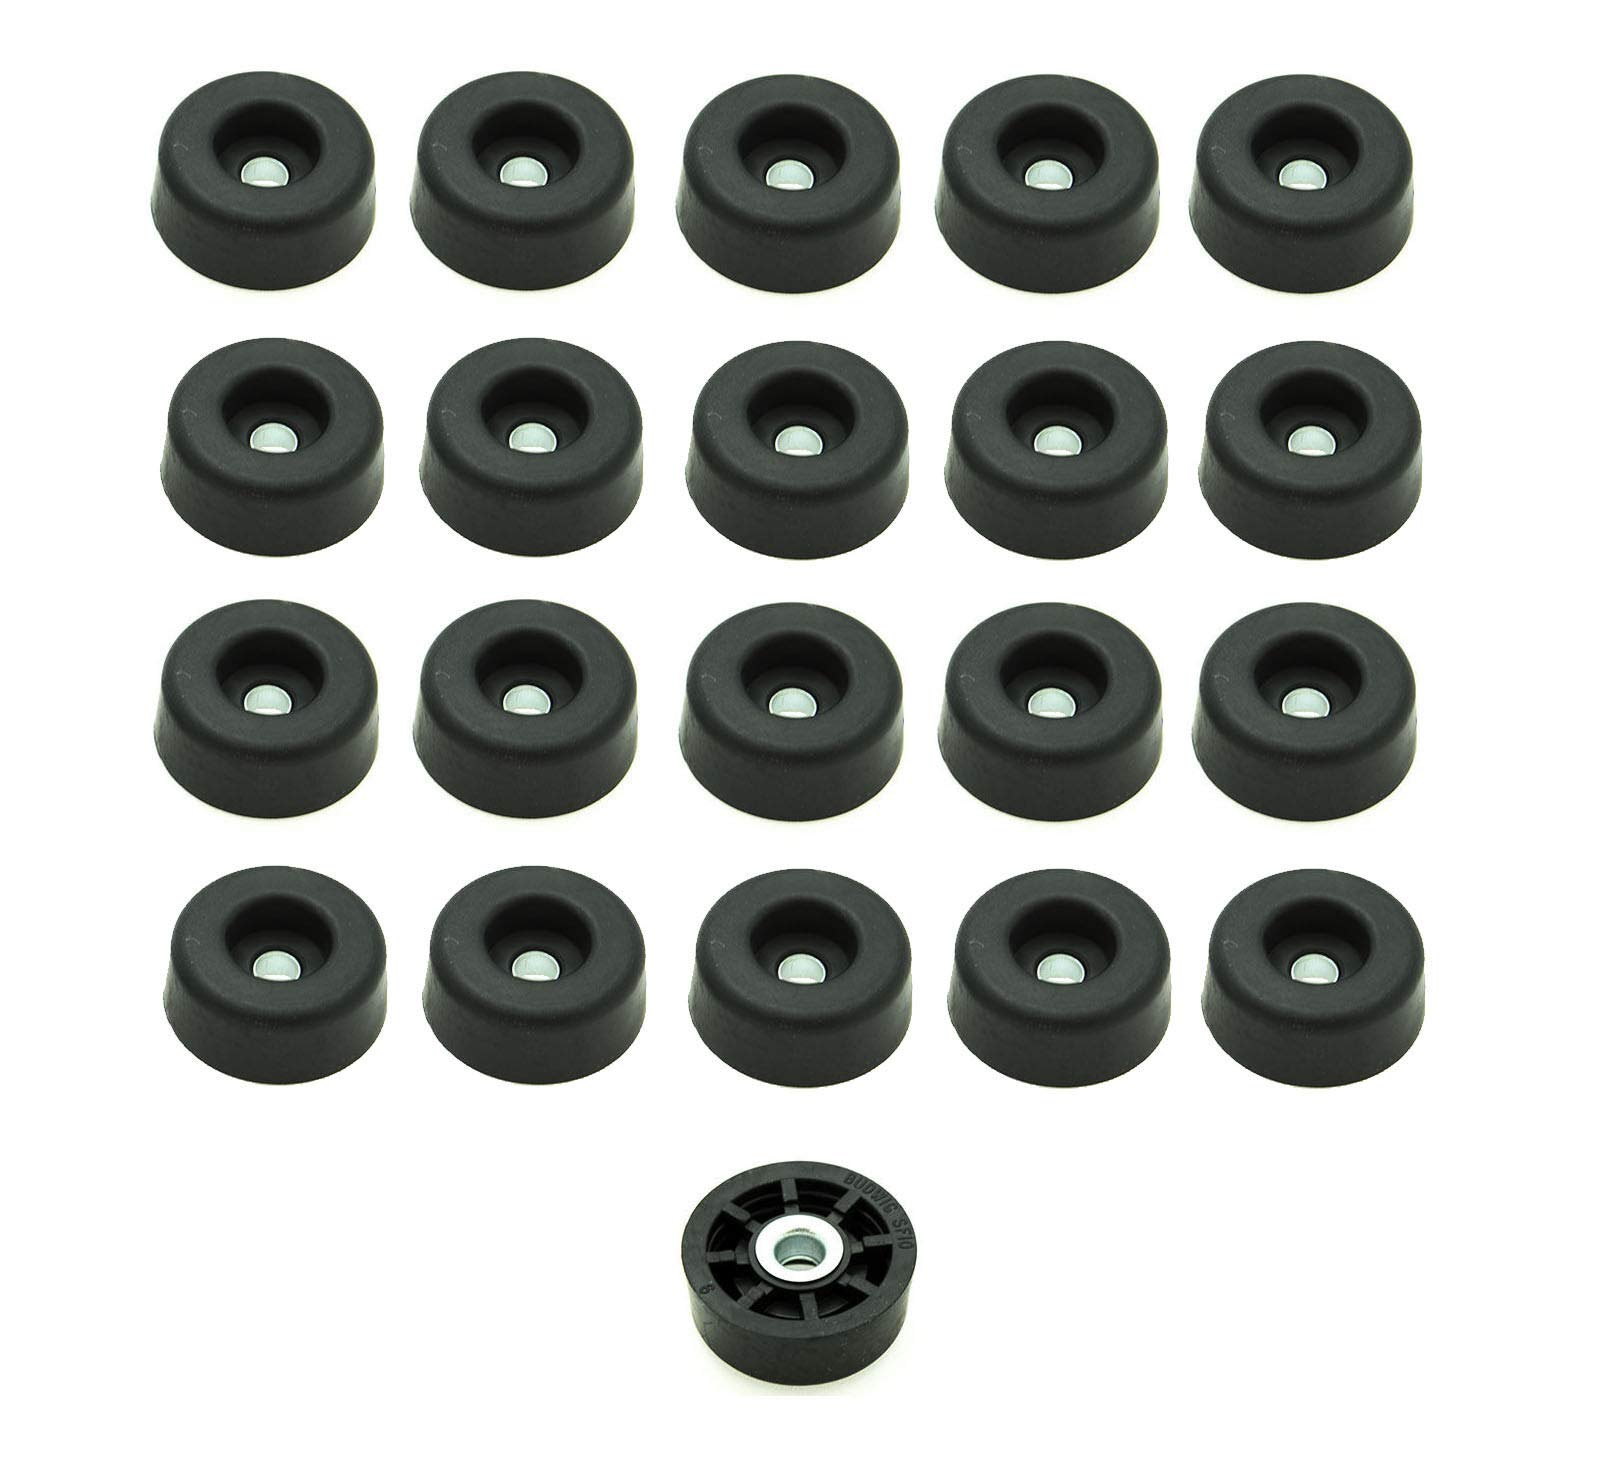 20 Round Rubber FEET Bumpers 1/2 H x 1 W Radio AMPS/Made in USA/Free S&H